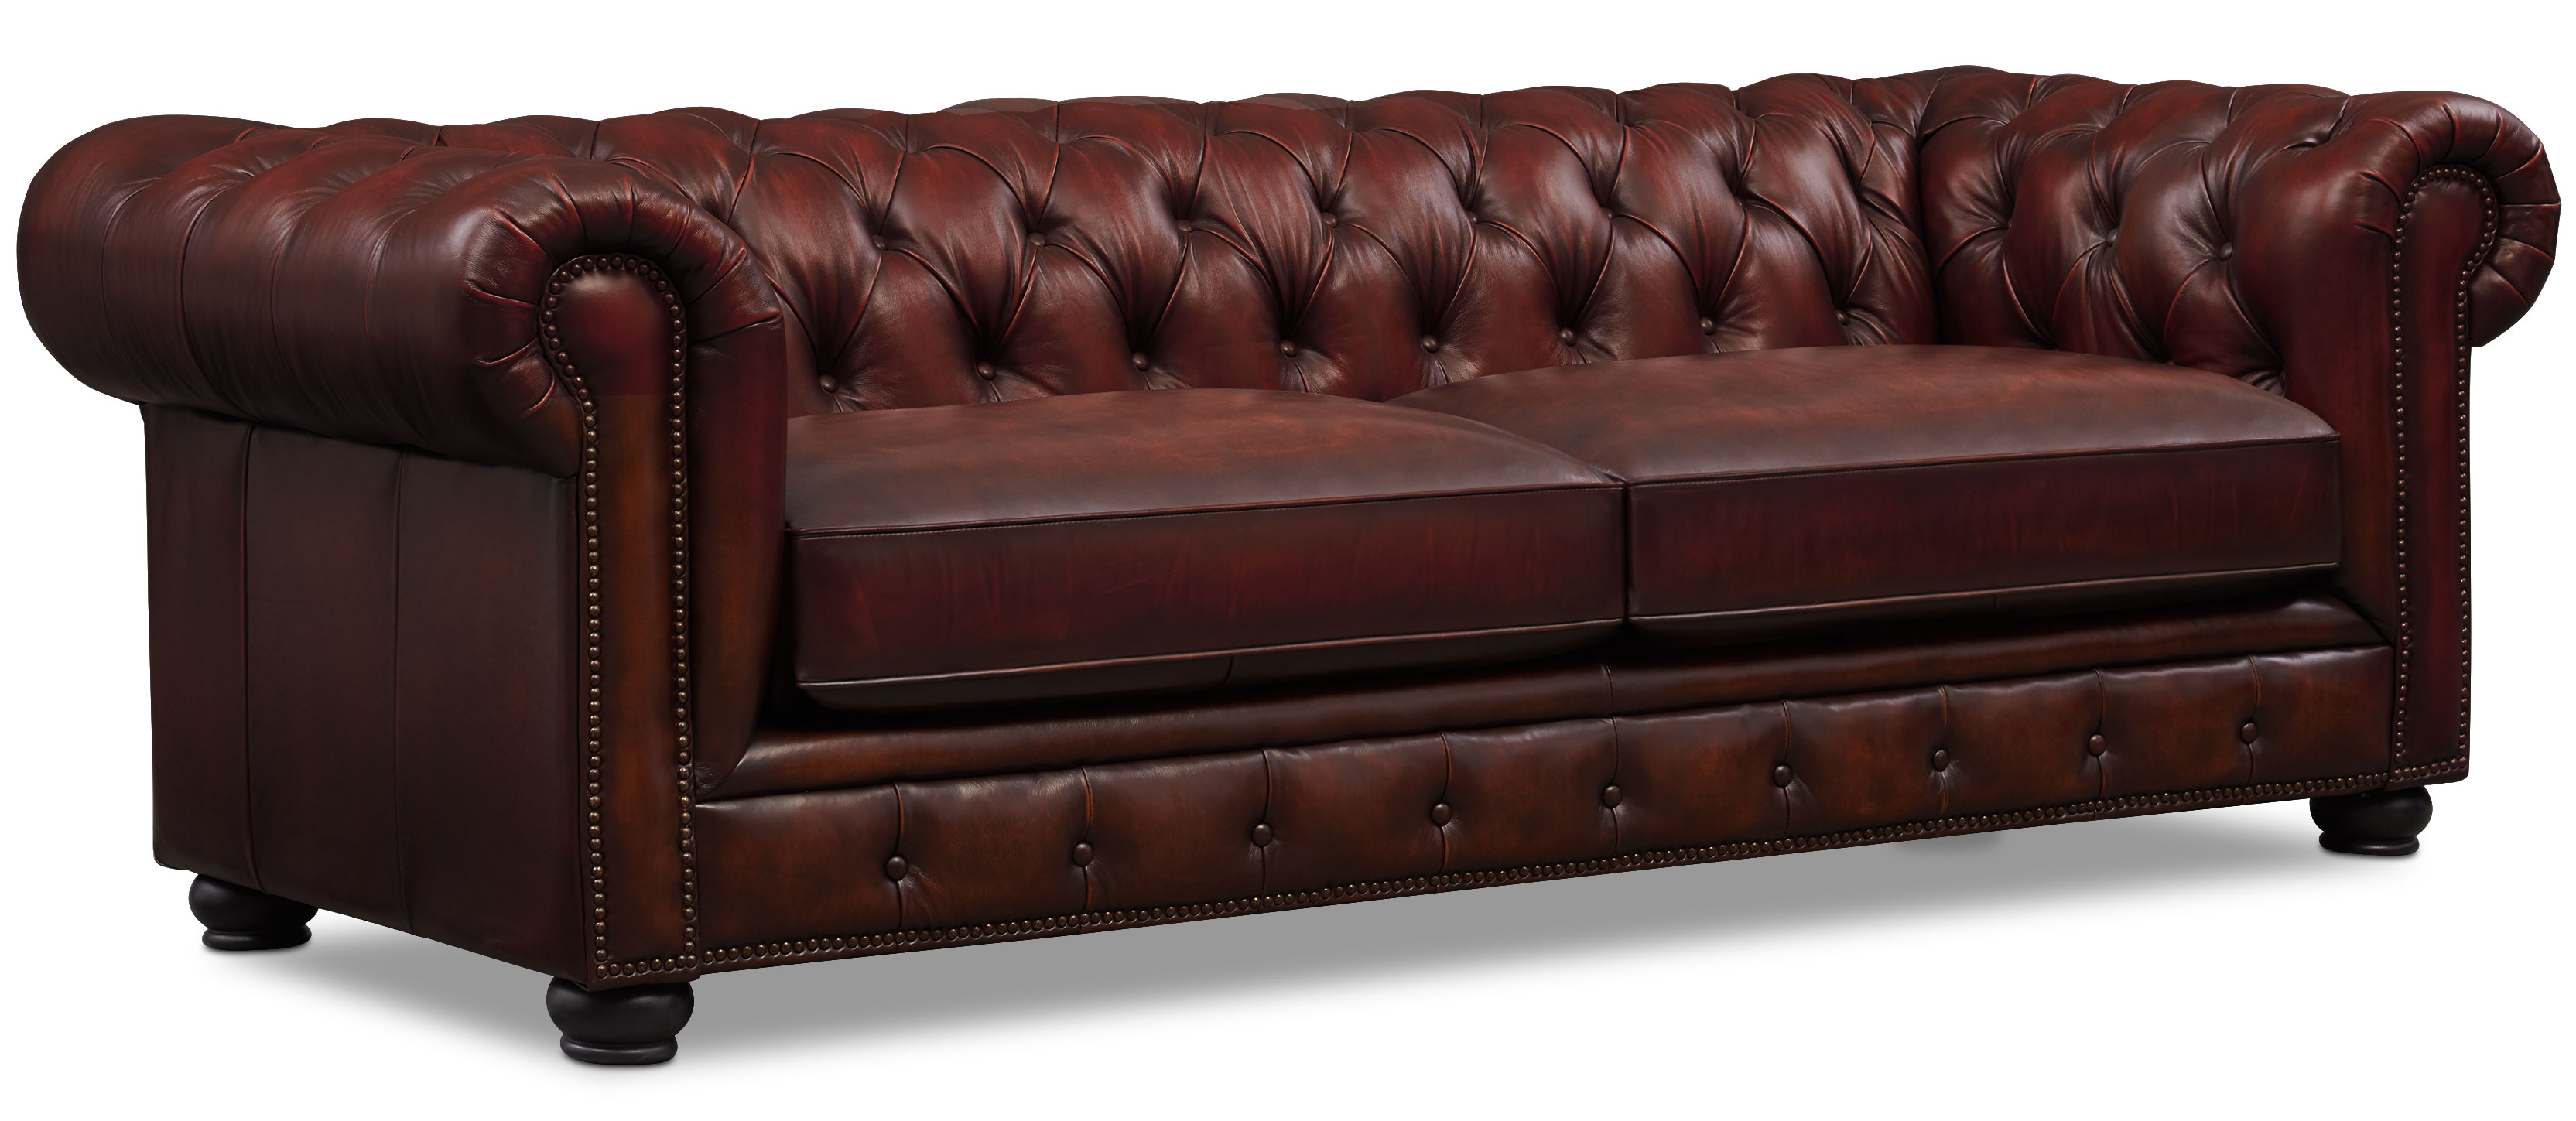 Living Room Furniture - Lexington Sofa